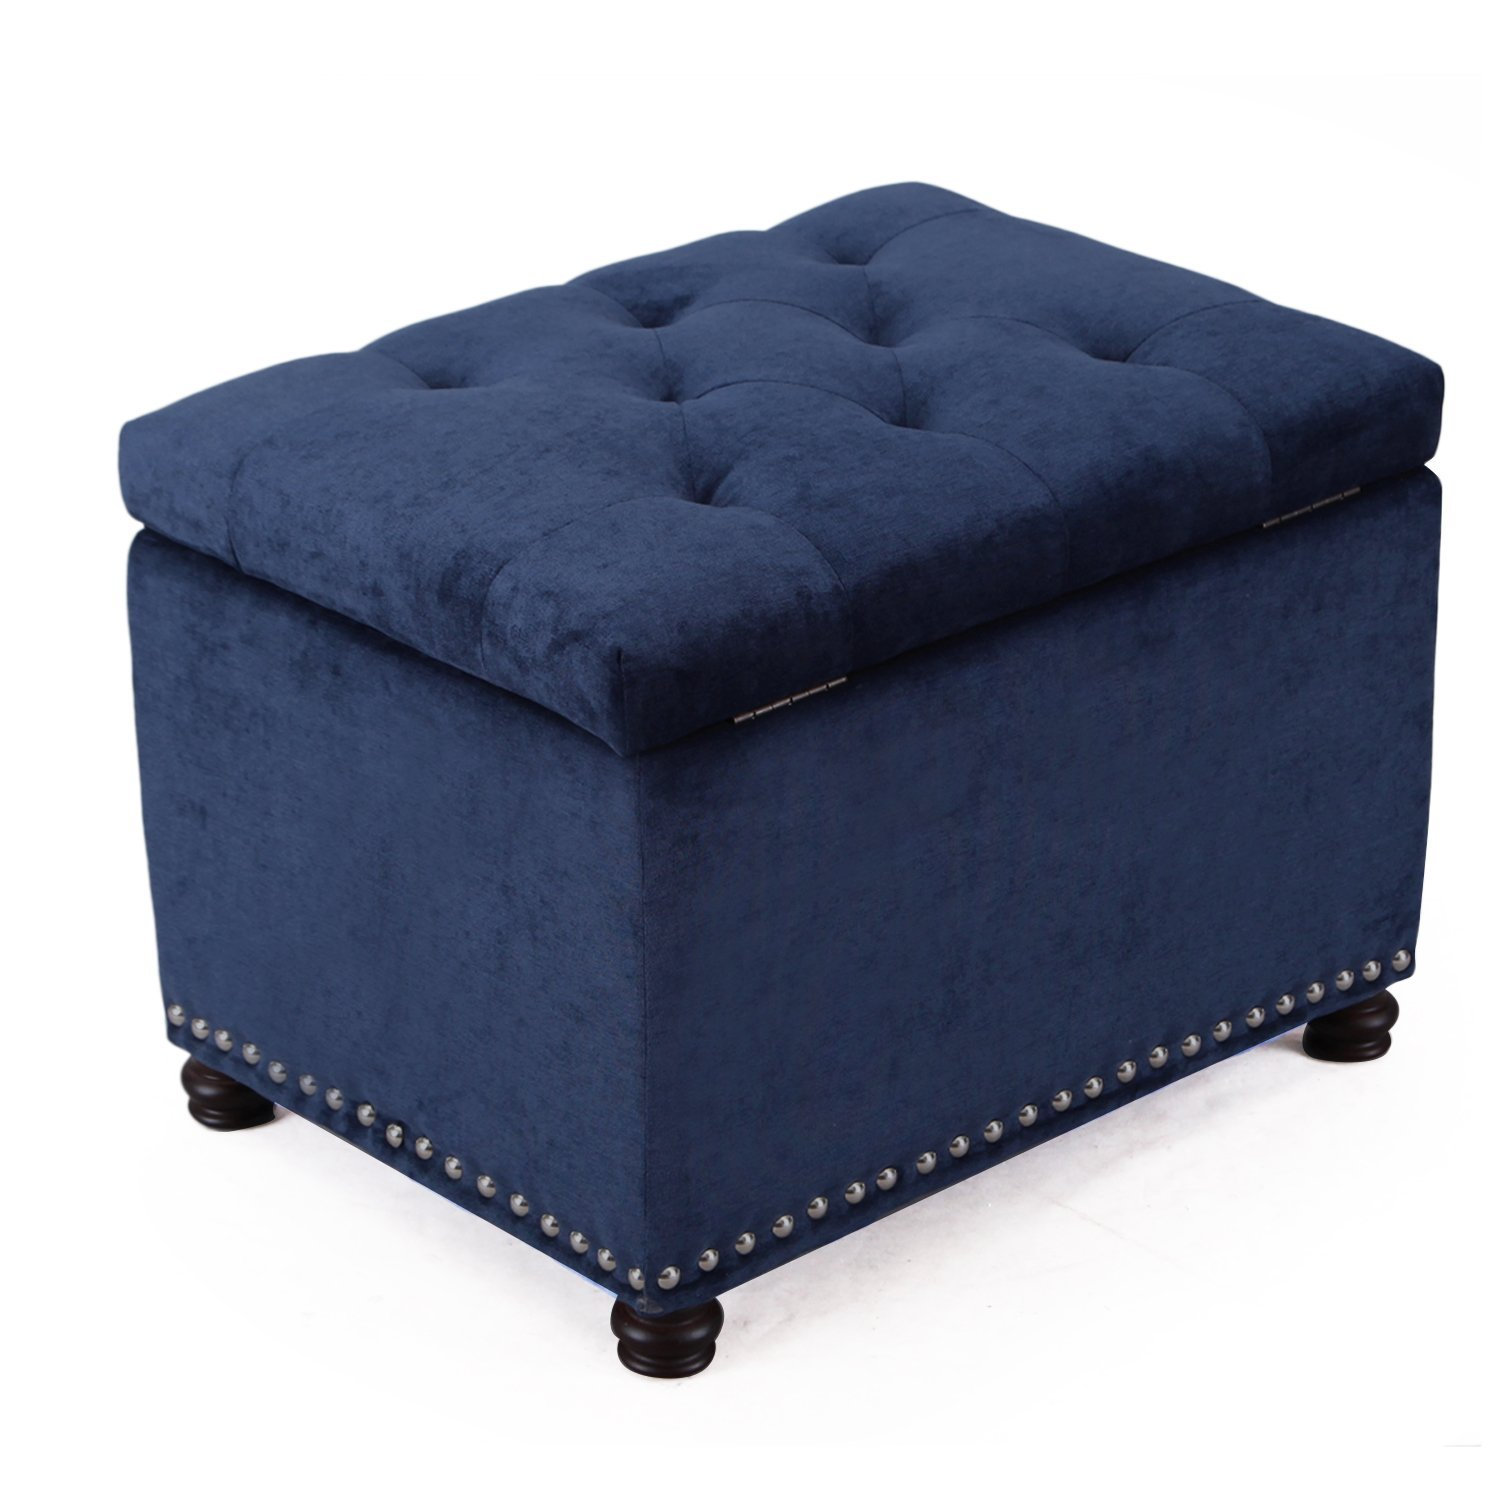 Adeco High End Dark Black Brown Classy Bonded Leather Tufted Accents Rectangular Storage Bench Ottoman Footstool